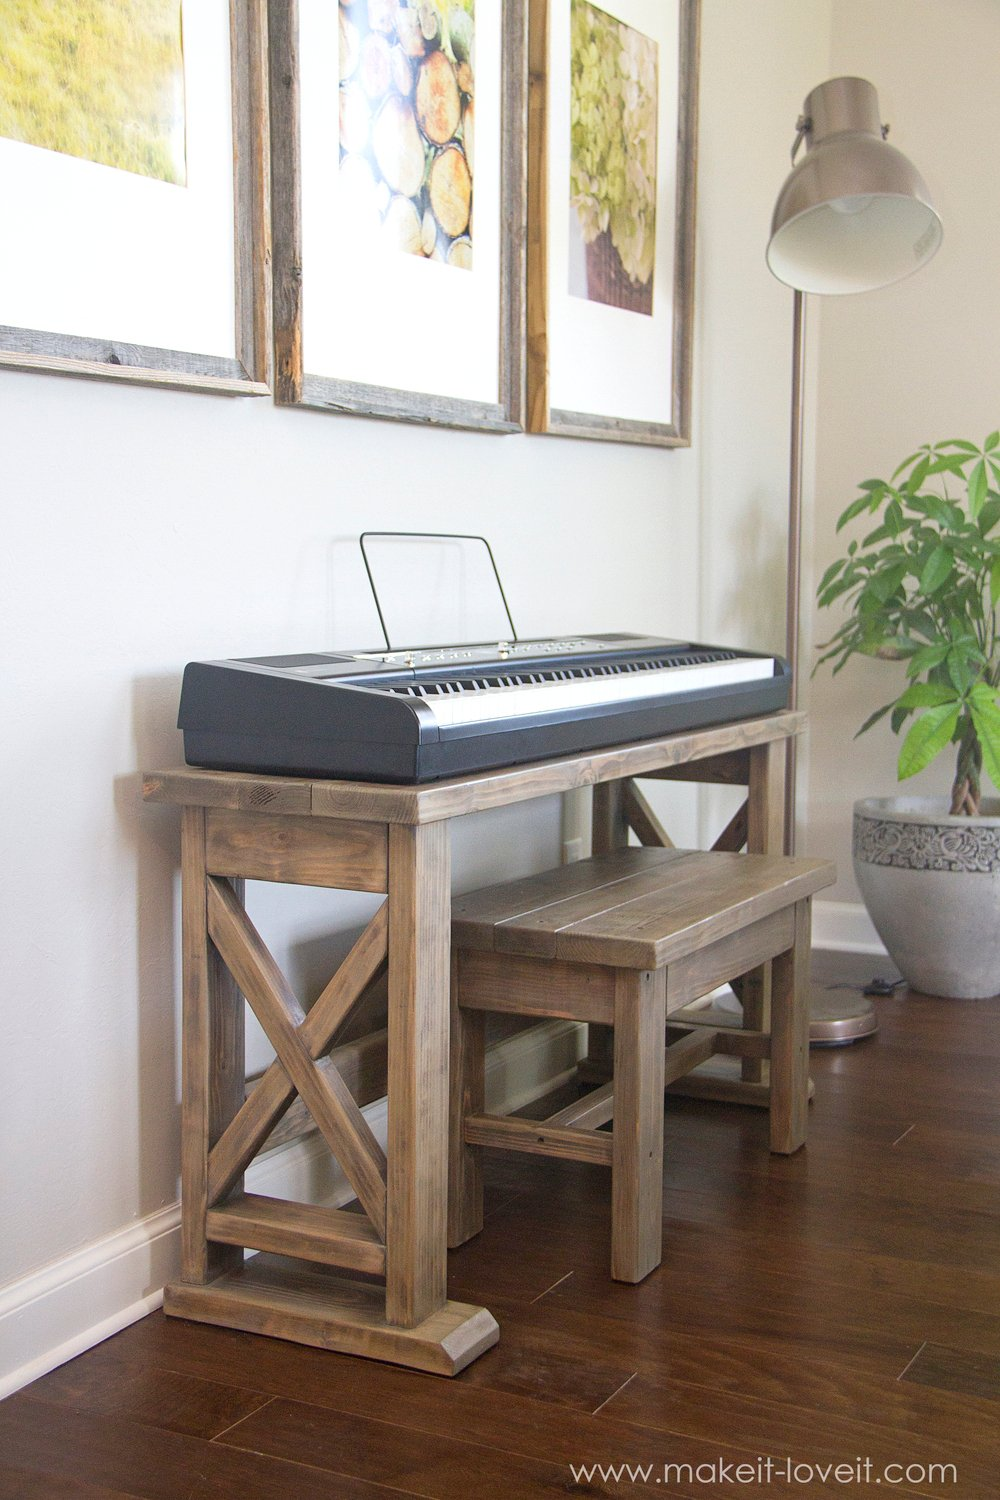 DIY Digital Piano Stand plus Bench (...a $25 project!!) | Make It ...